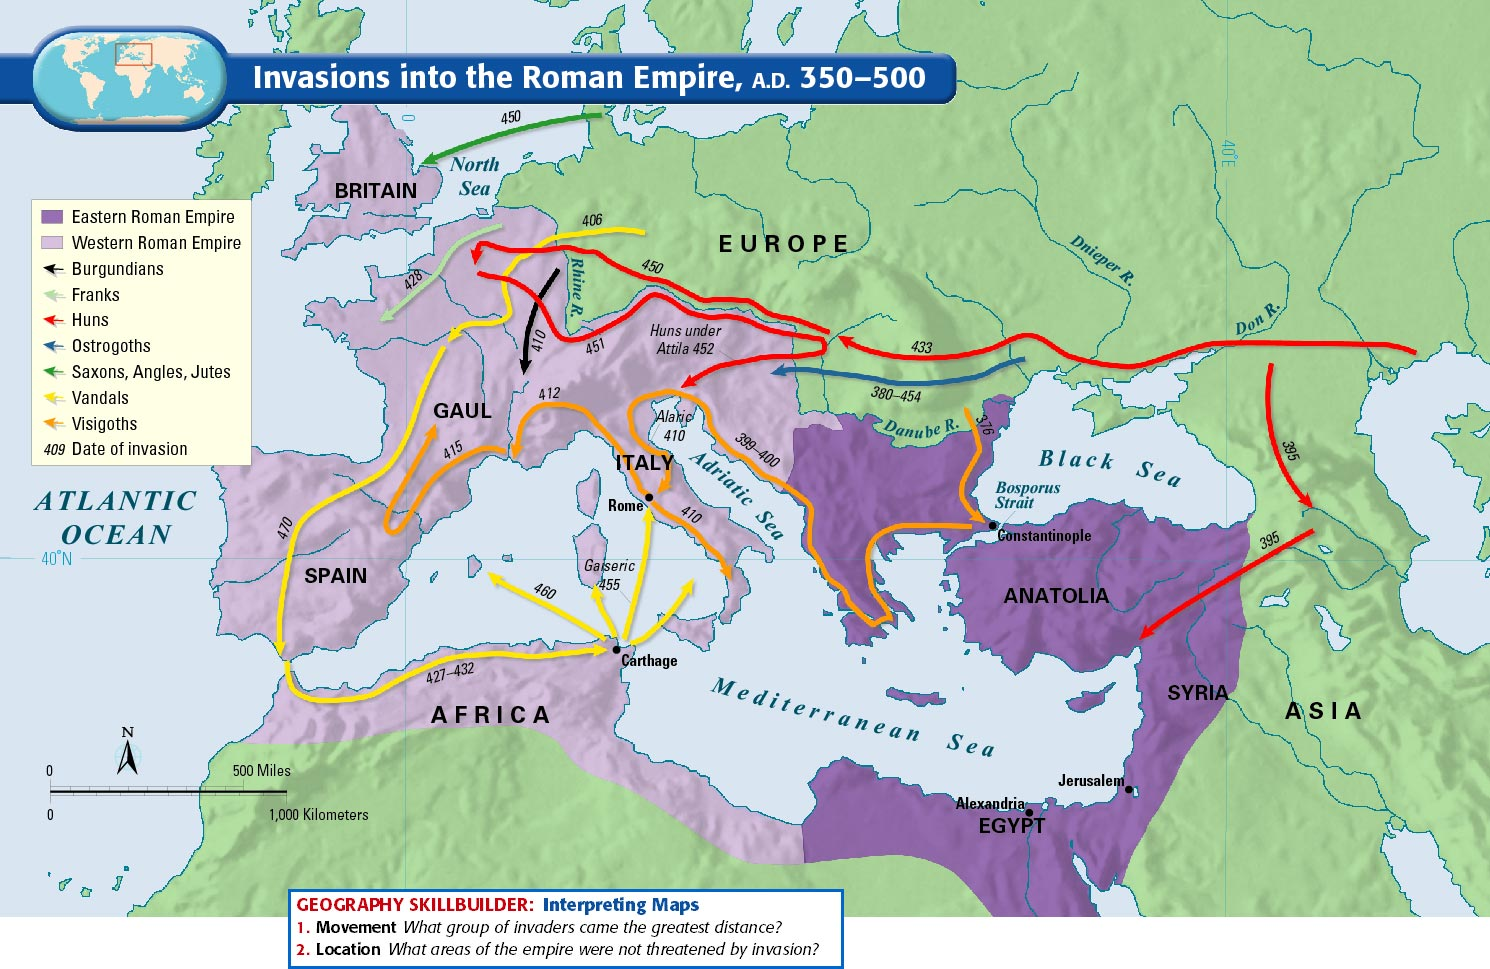 worksheet Byzantine Empire Map Worksheet mr es world history page middle ages ppt assignment december 10 roman empire invasions map